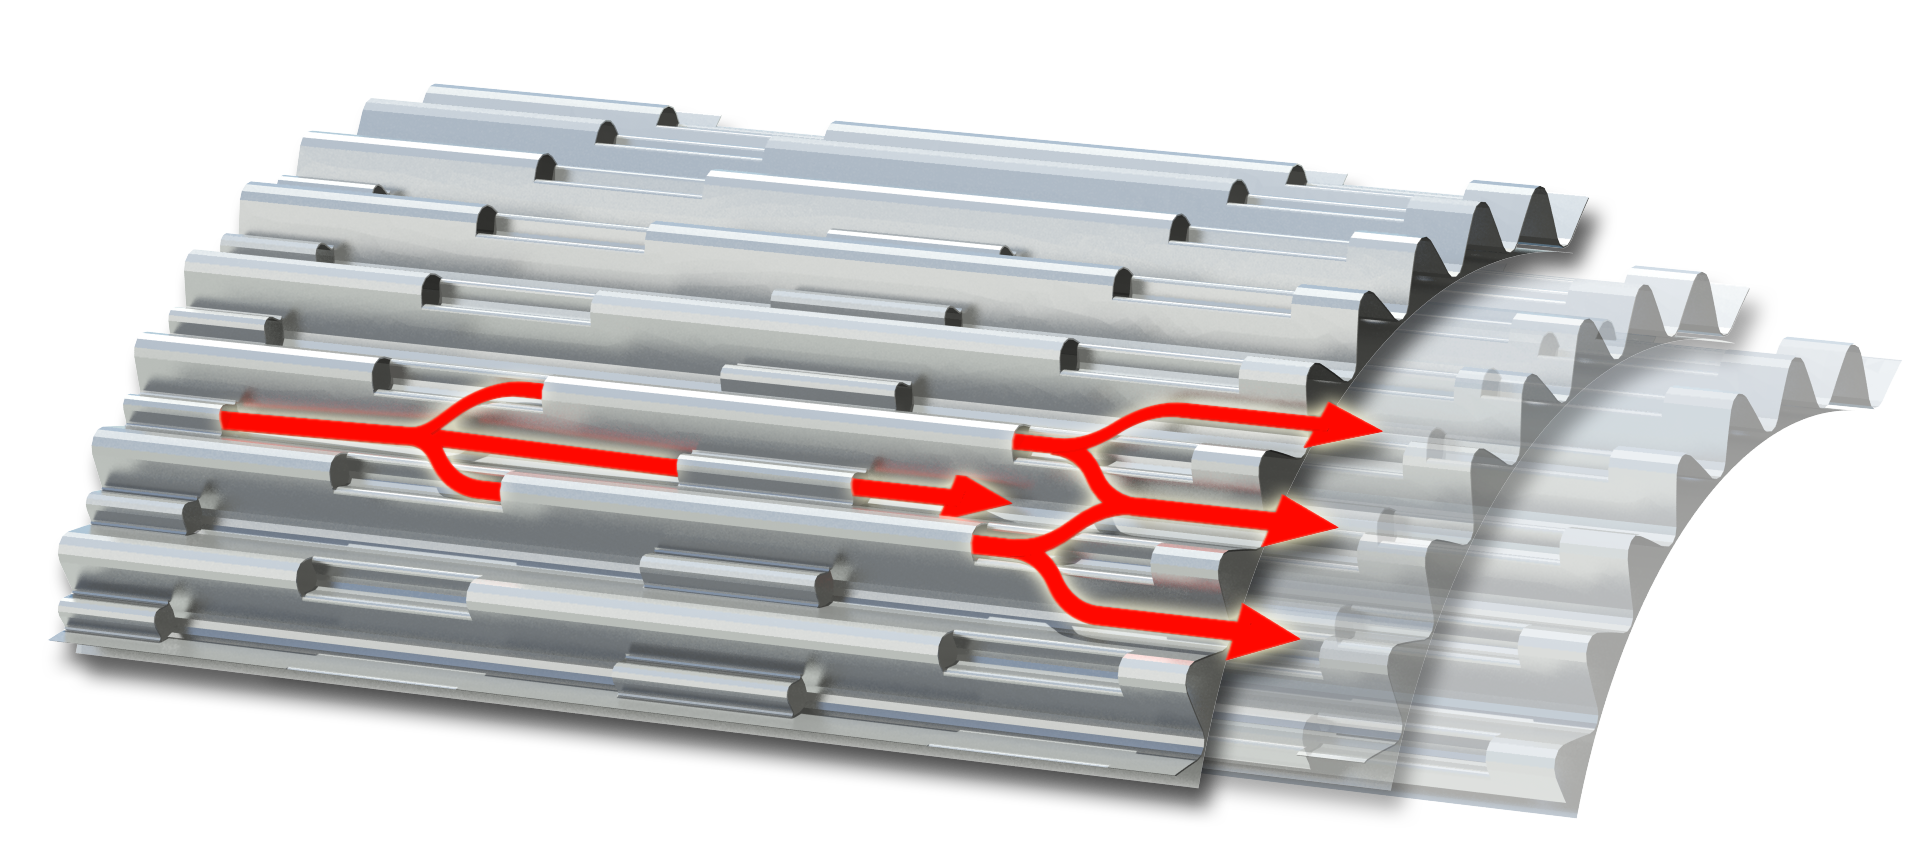 """The core of the catalytic converter is wound from """"LS"""" metal foil, a material developed by Continental. Longitudinal structures (= LS) in this foil or substrate create more turbulence in the exhaust gas. This ensures better contact between the nitrogen oxides and the catalytically coated substrate, resulting in higher conversion efficiency."""